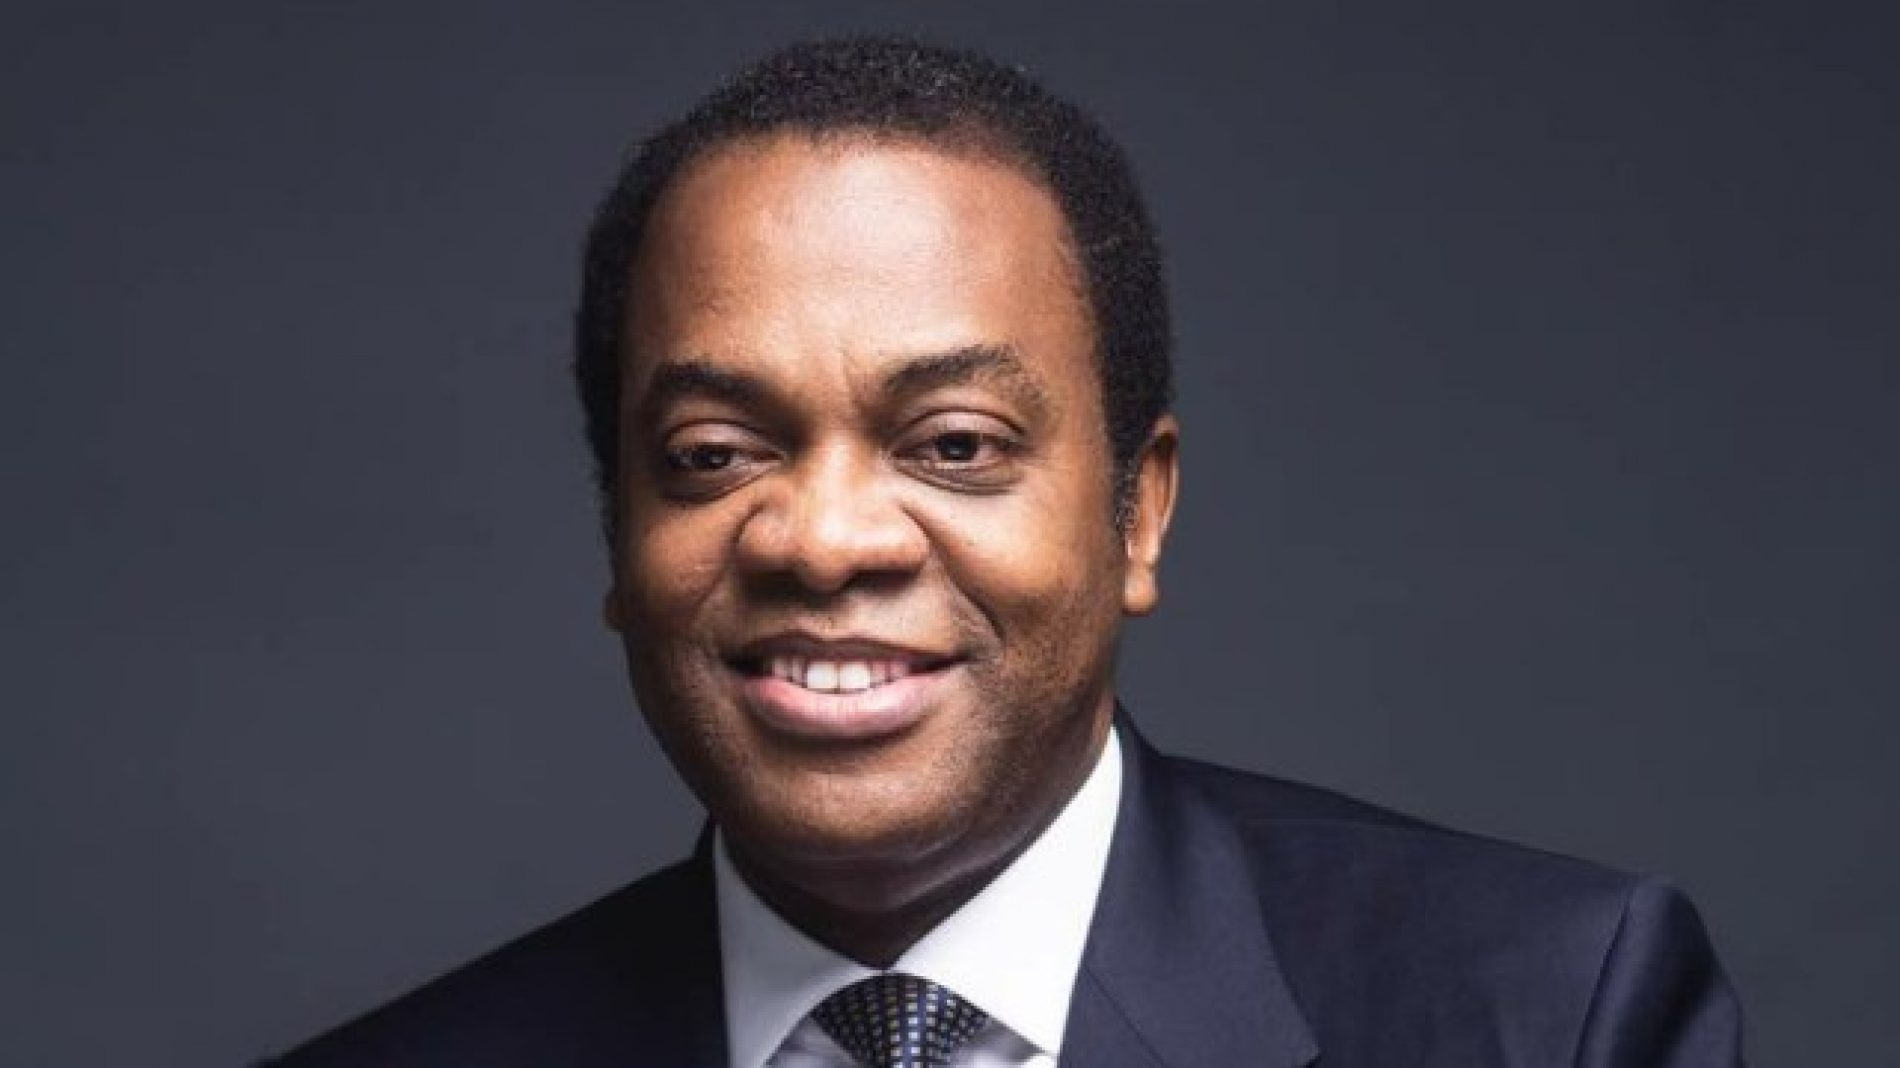 """I Would Not Criminalise Gay Nigerians."" – Donald Duke reveals of his intended presidency"